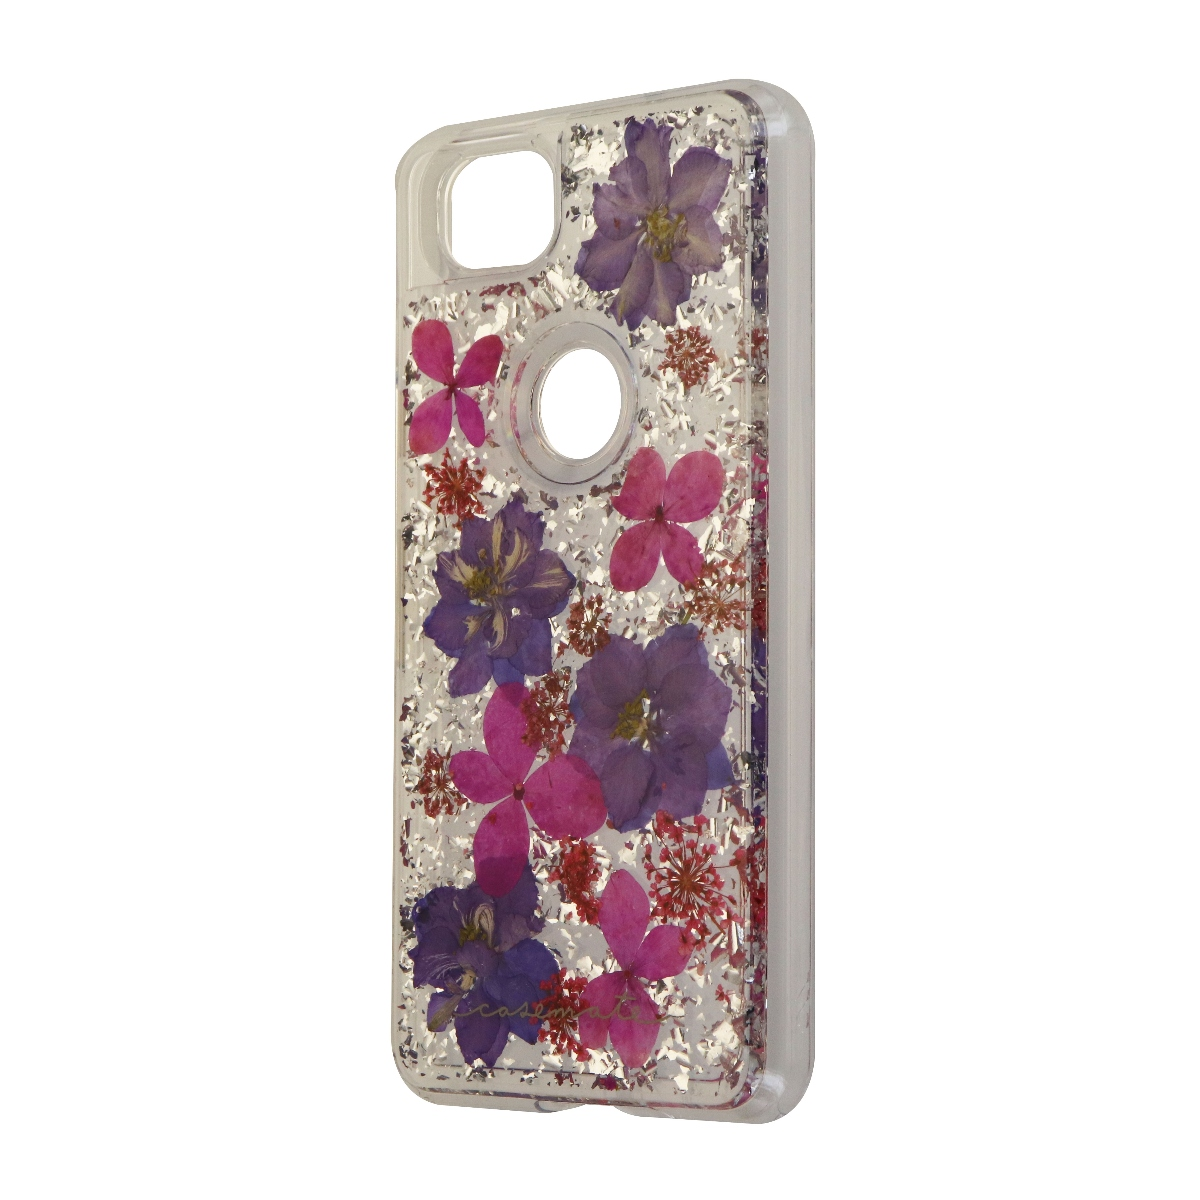 Case-Mate Karat Petals Series Hard Case for Google Pixel 2 - Purple/Pink Flowers